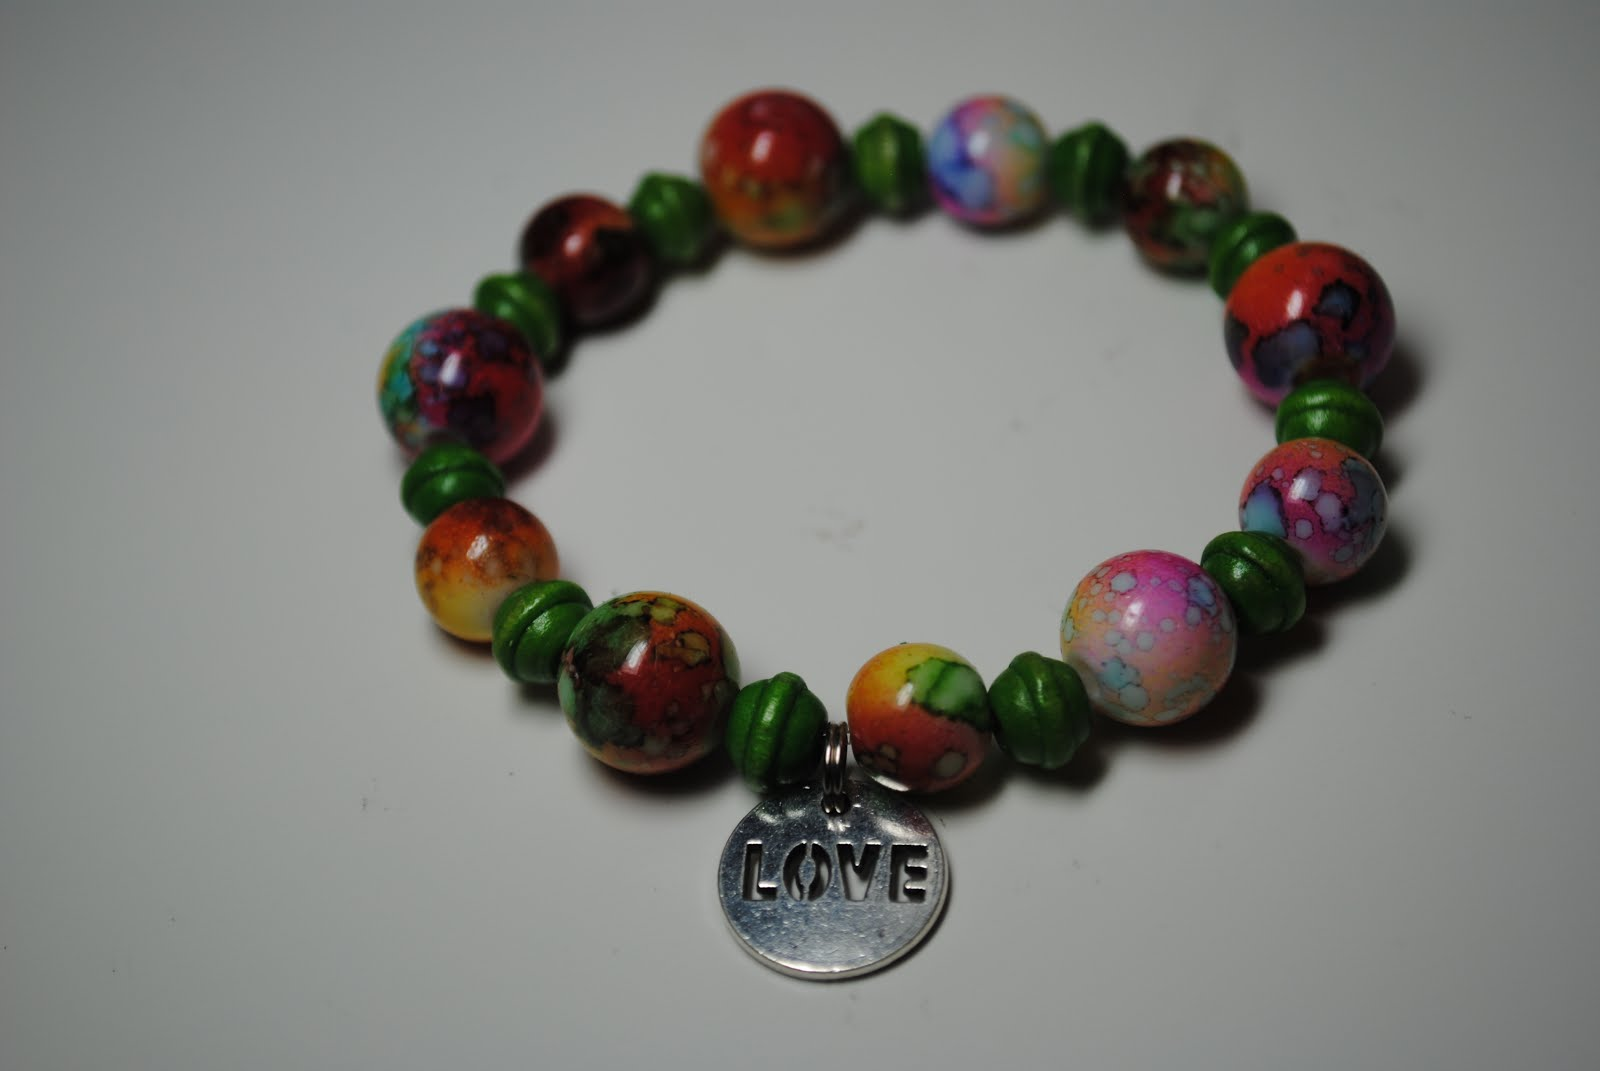 Around the World Bracelet with Love Charm - Multi/Green $12